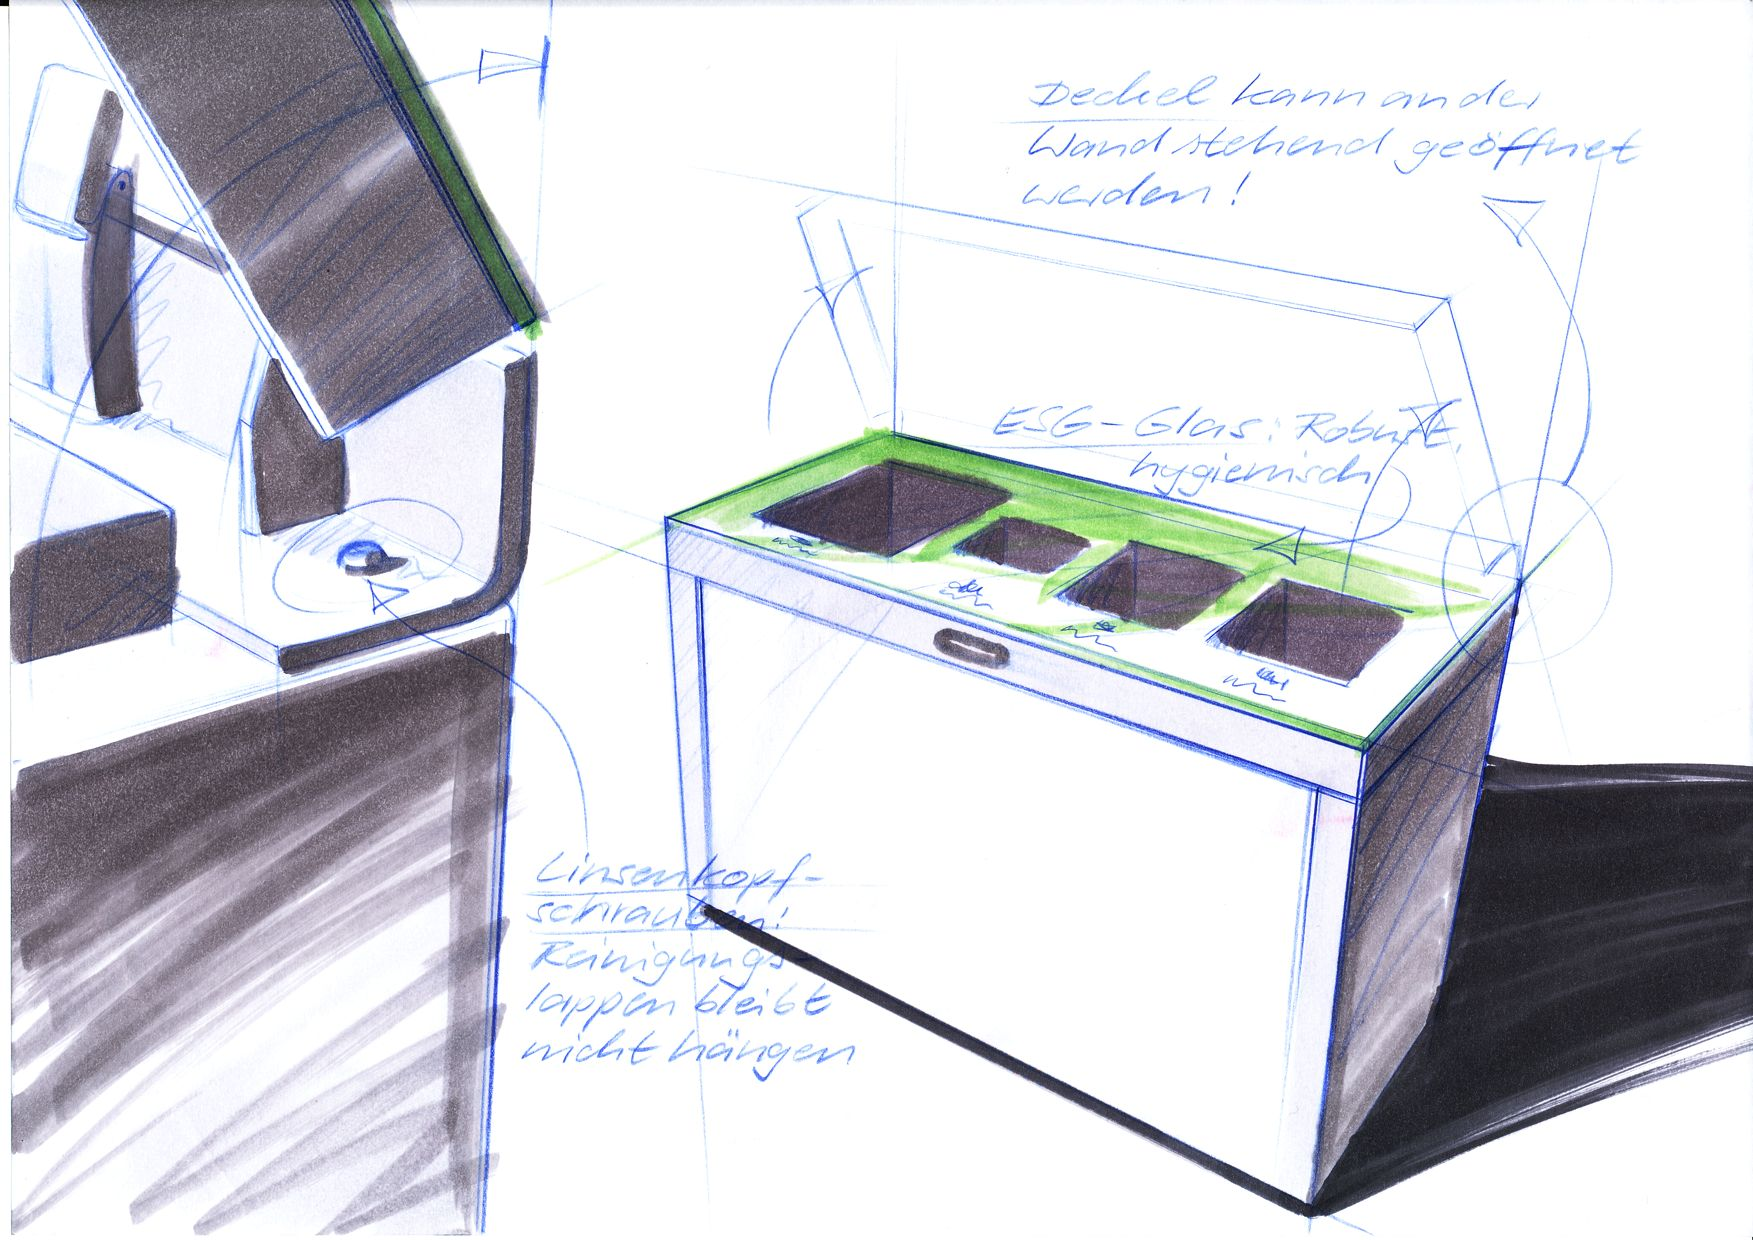 Multilith Design Recyclingstation, Public Waste Bins, Poubelle Recyclage, Recycling Box, Abfalltrenner, Public Waste Bin, Avfallbehälter, Designdoing, Design Thinking